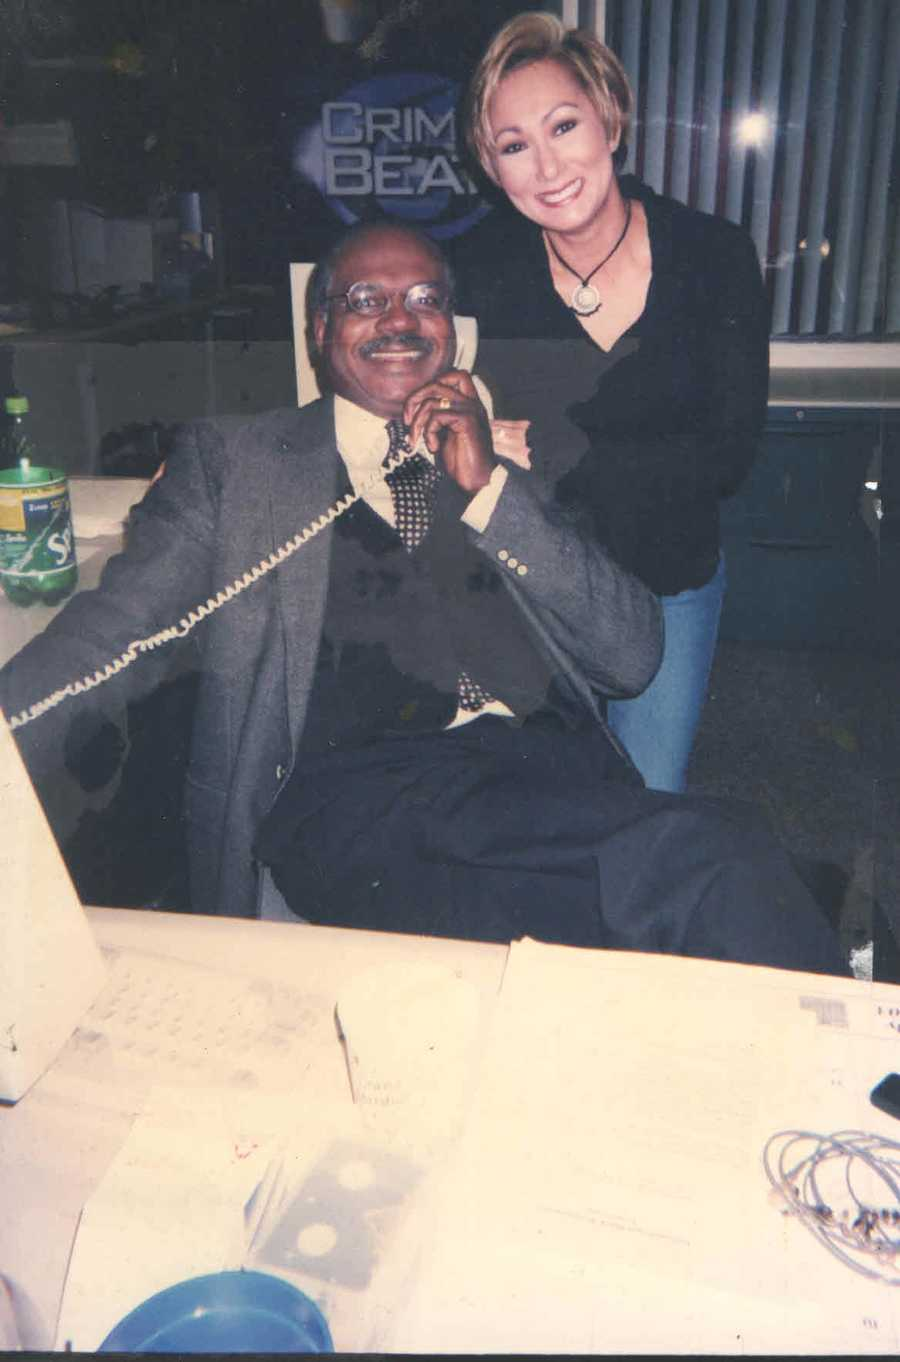 1996: Norman on the phone next to Kriss Fairbairn after WDSU-TV moved its studios to the Central Business District.